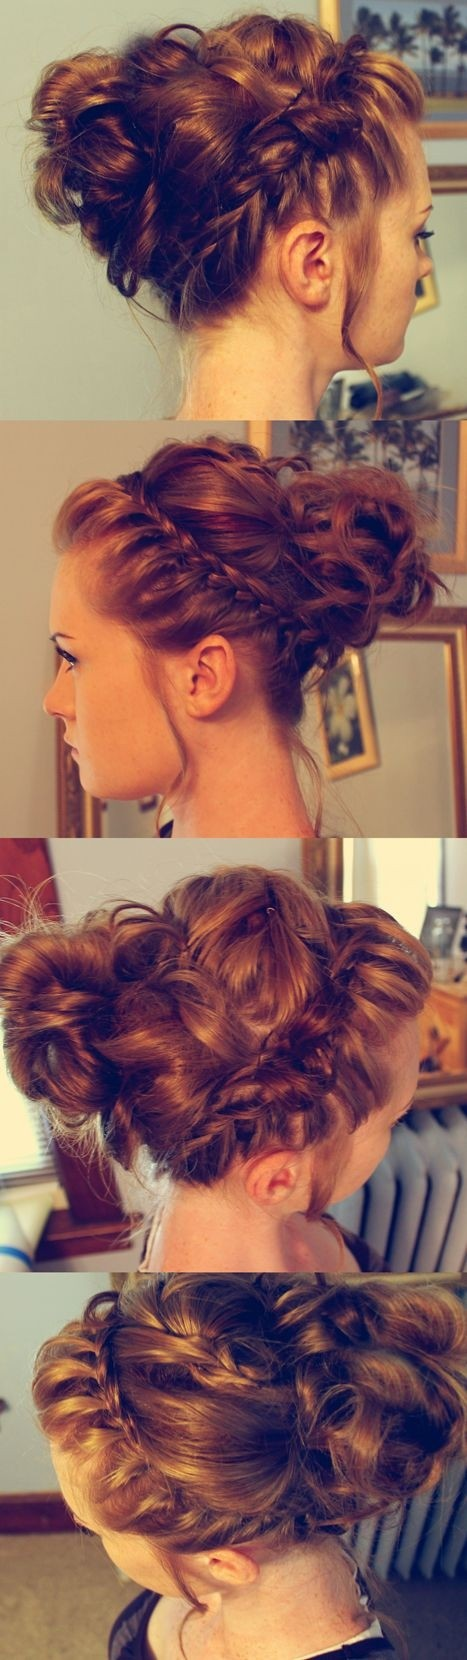 Braided Messy Bun Updo - Trendy Prom Hairstyles for Long Hair